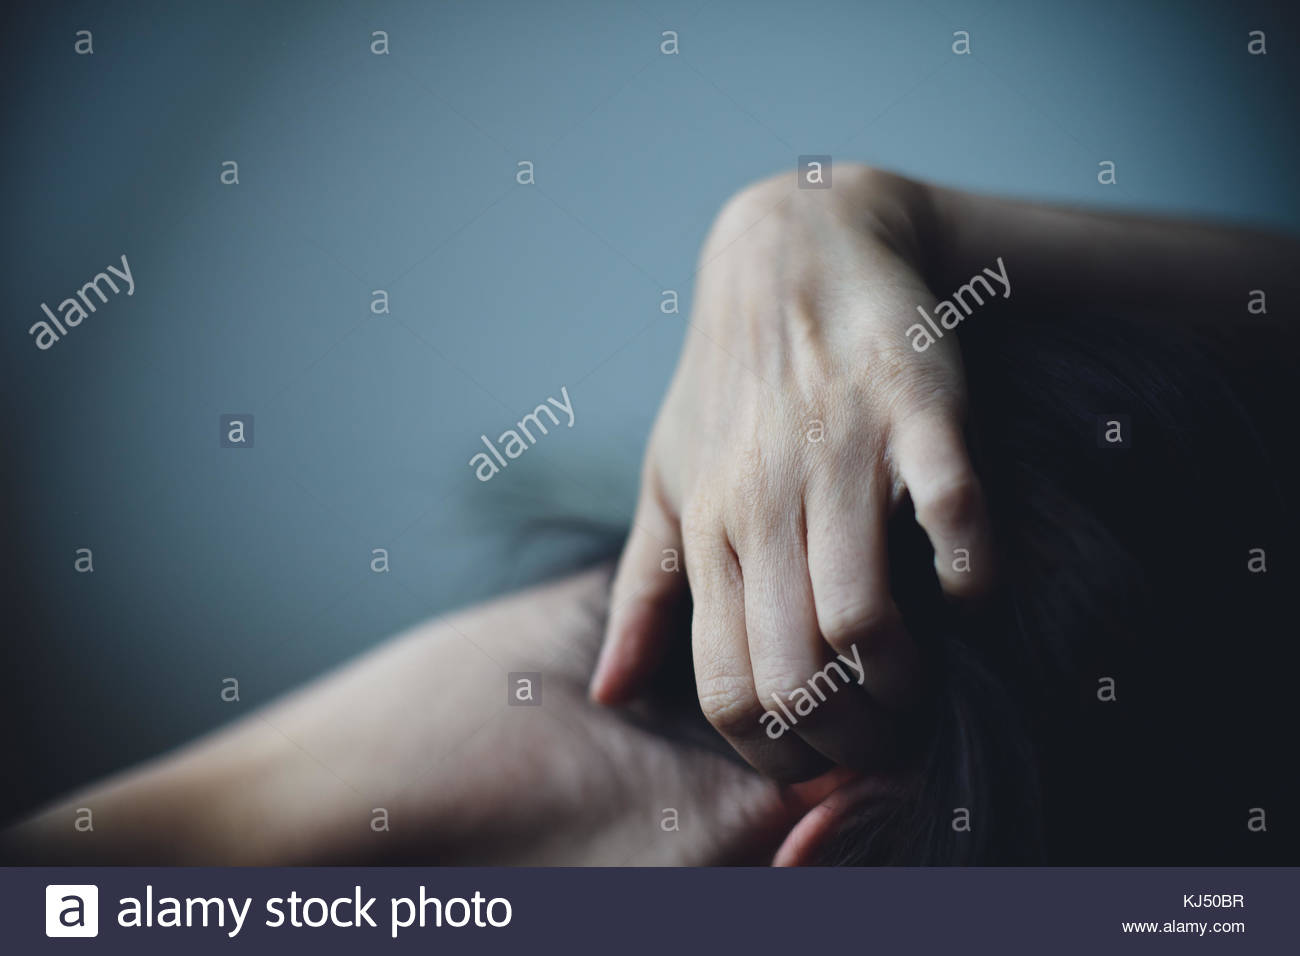 hand scratching woman's skin - Stock Image